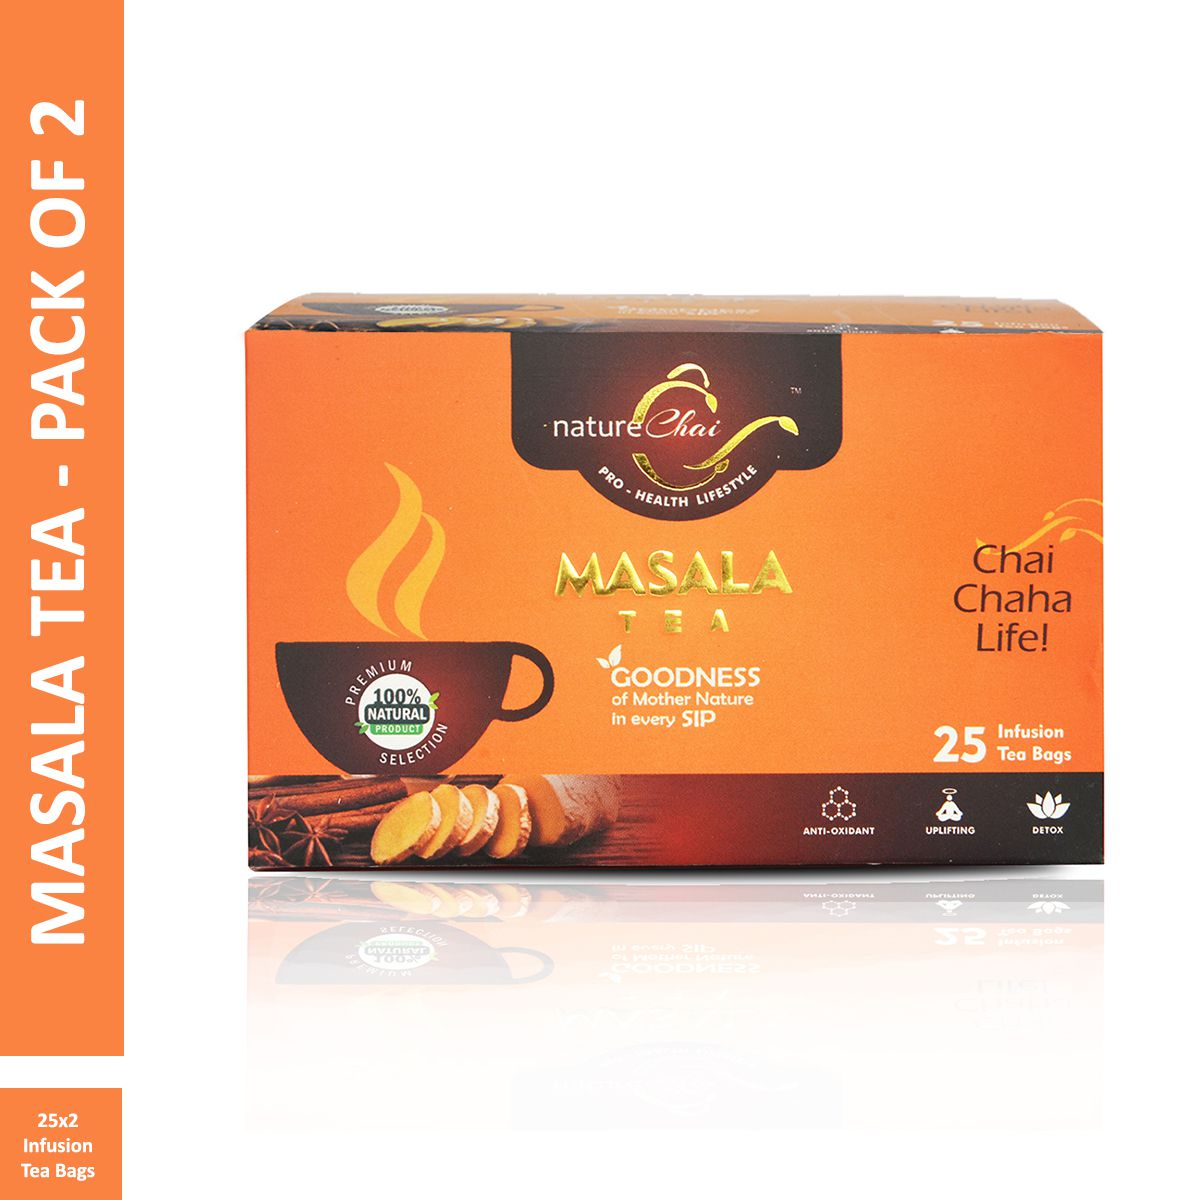 Nature Chai Masala Green Tea Bags 25 no.s Pack of 2